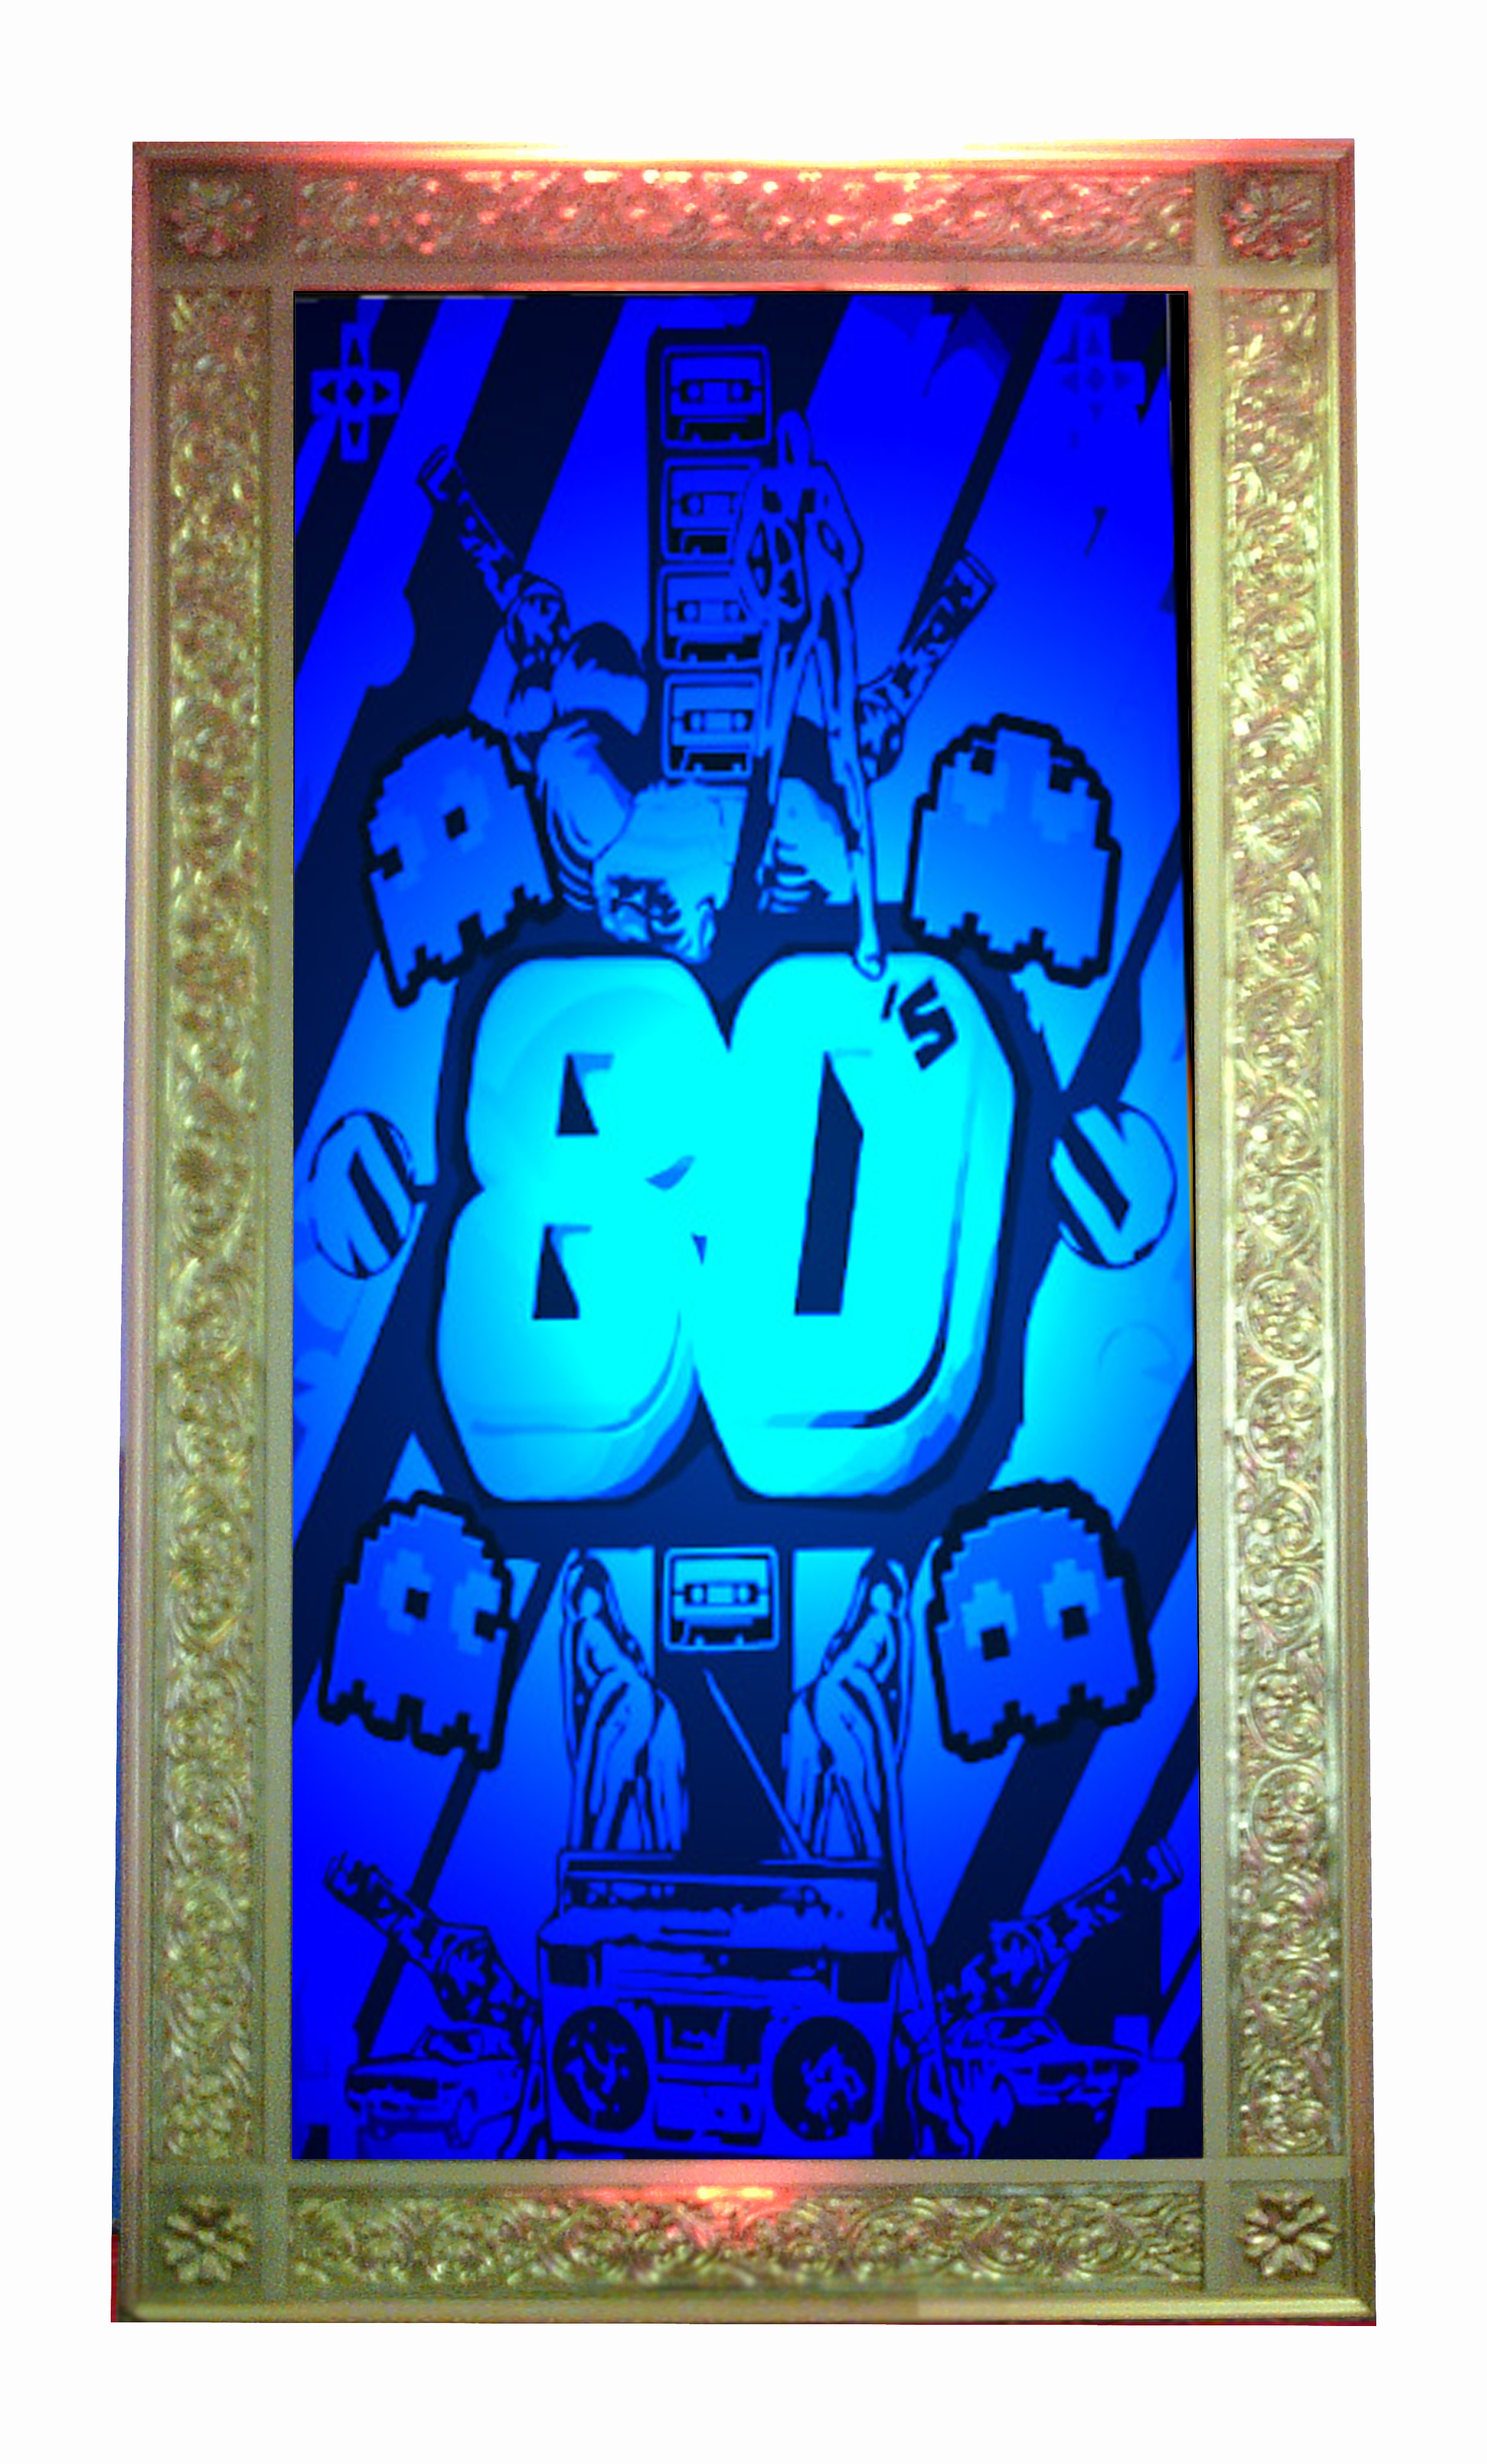 Giant Gold Framed transparencies - Approx 2.5m high and 1.2m wide  These are back lit with either static or colour changing lights - 2 available